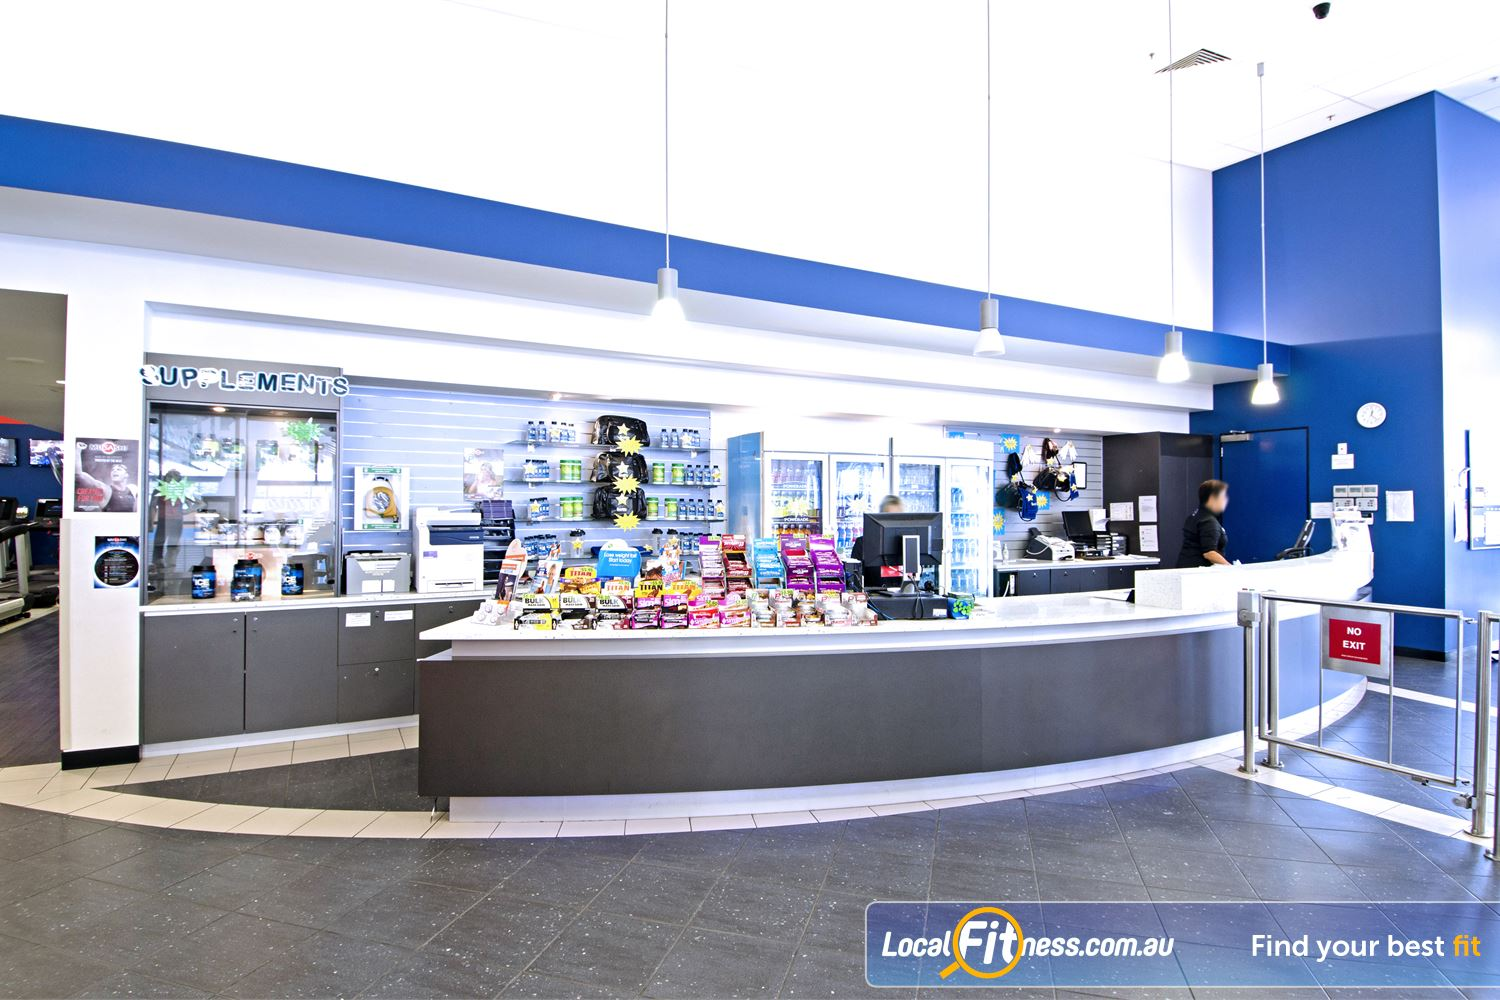 Goodlife Health Clubs Chermside Meet our friendly Goodlife team who will take care of your every need.